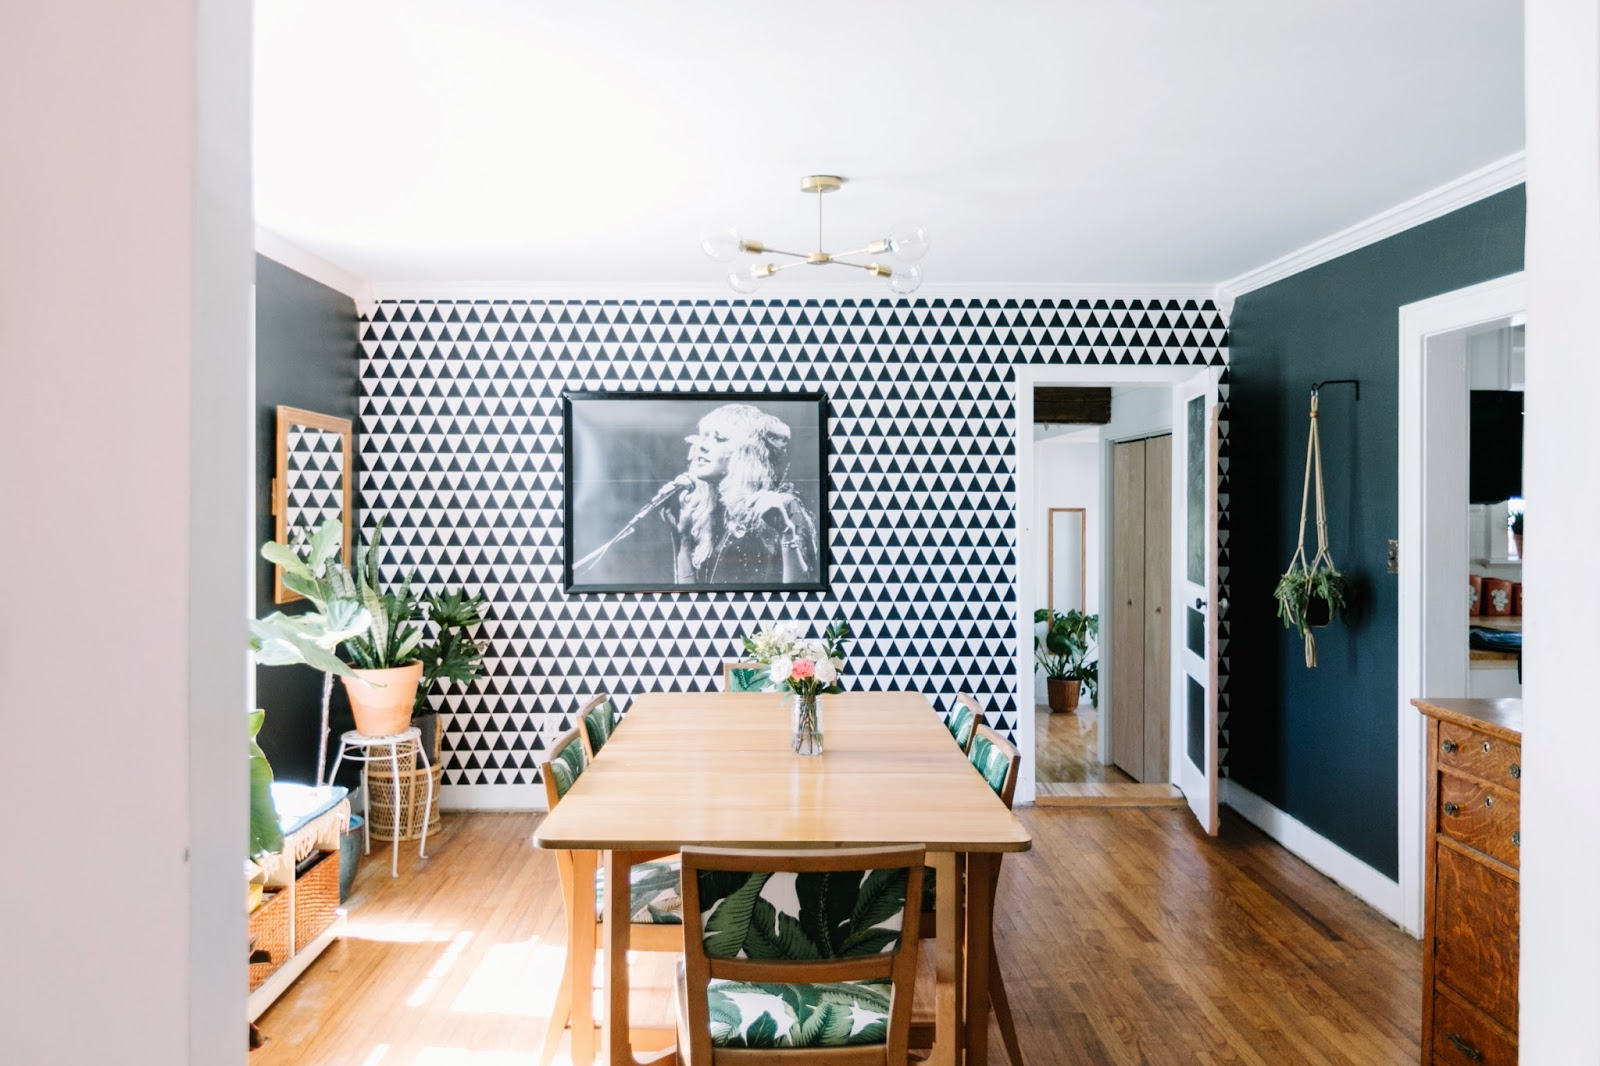 We Love Stevie And Knew Shed Be Perfect For Our Dining Room Wall Plus She Really Breaks Up The Wallpaper Pattern Print Cost 8 Frame Was